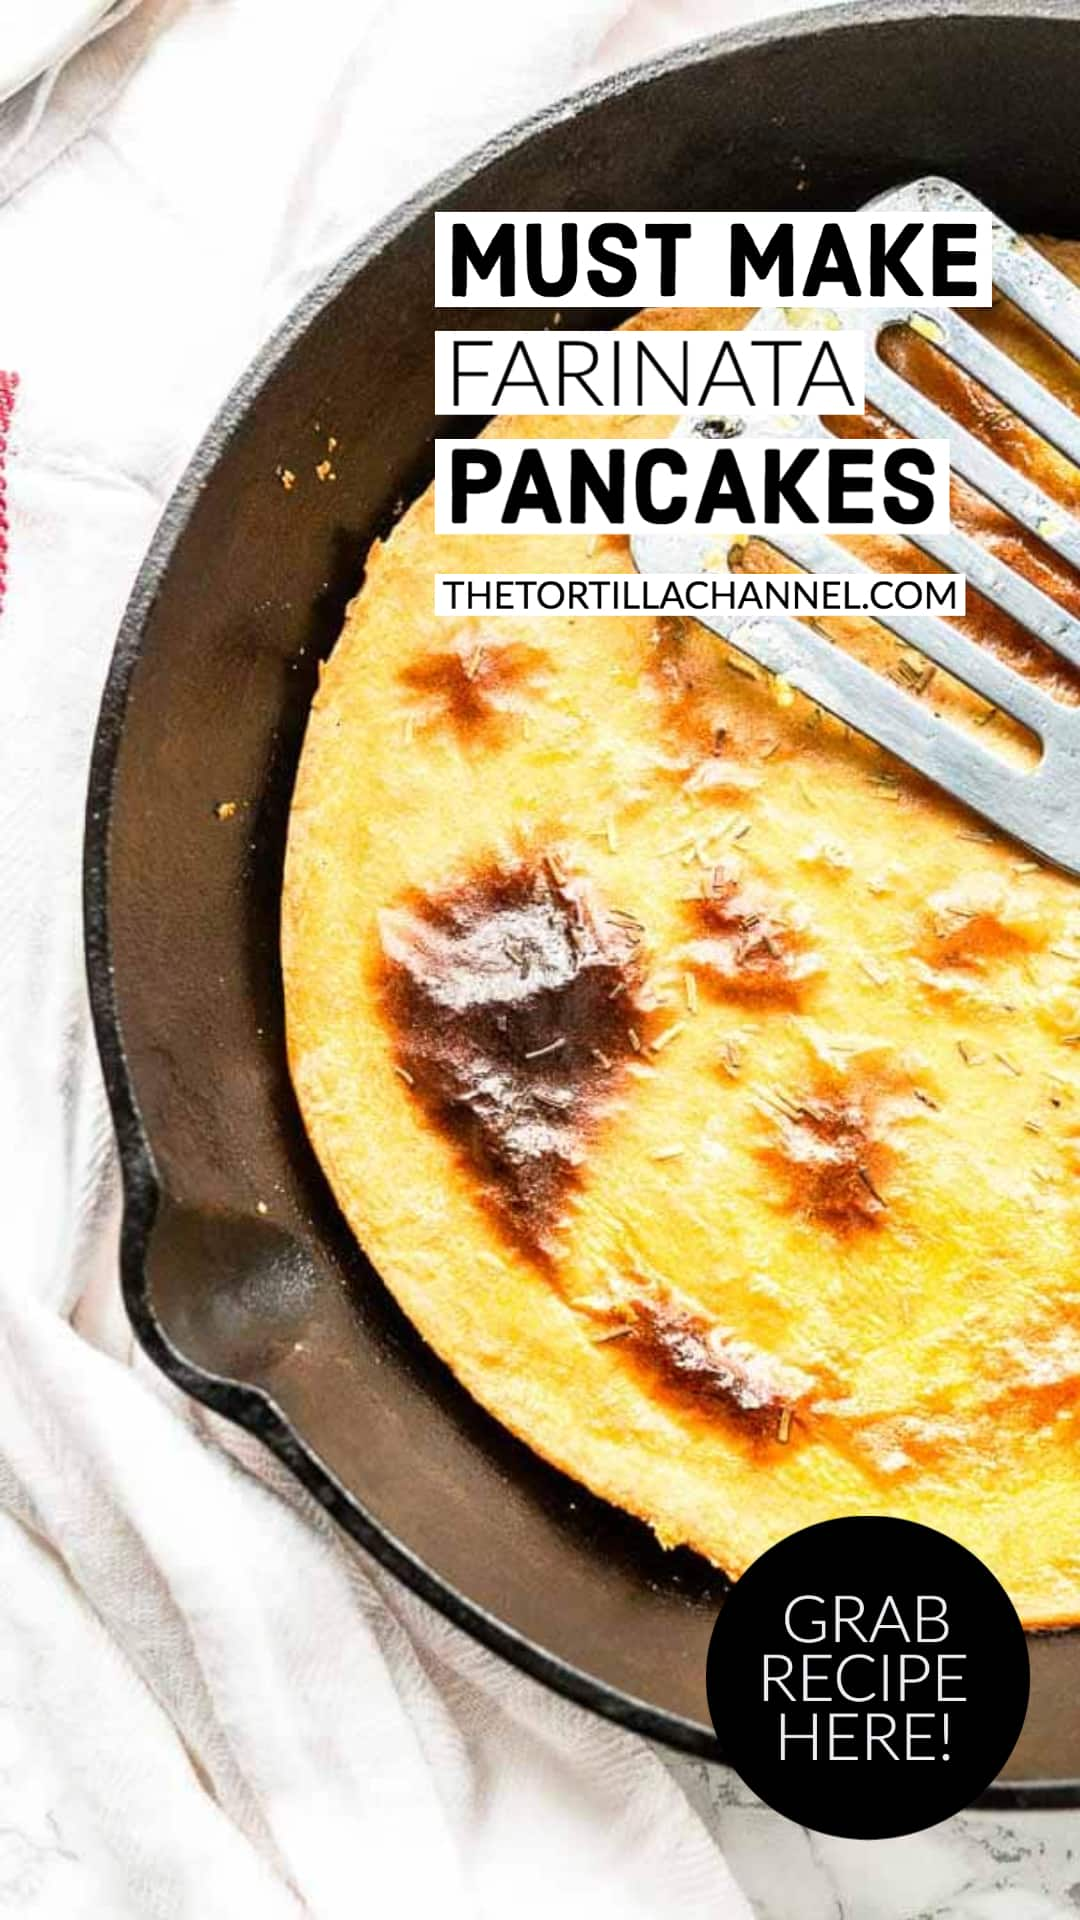 The best Italian chickpea pancake is this farinata recipe. It is gluten free, vegan with a nutty flavor. Great to eat as a snack or side dish. Want to try visit thetortillachannel.com #thetortillachannel #farinata #chickpeapancake #Italianchickpeapancake #pancake